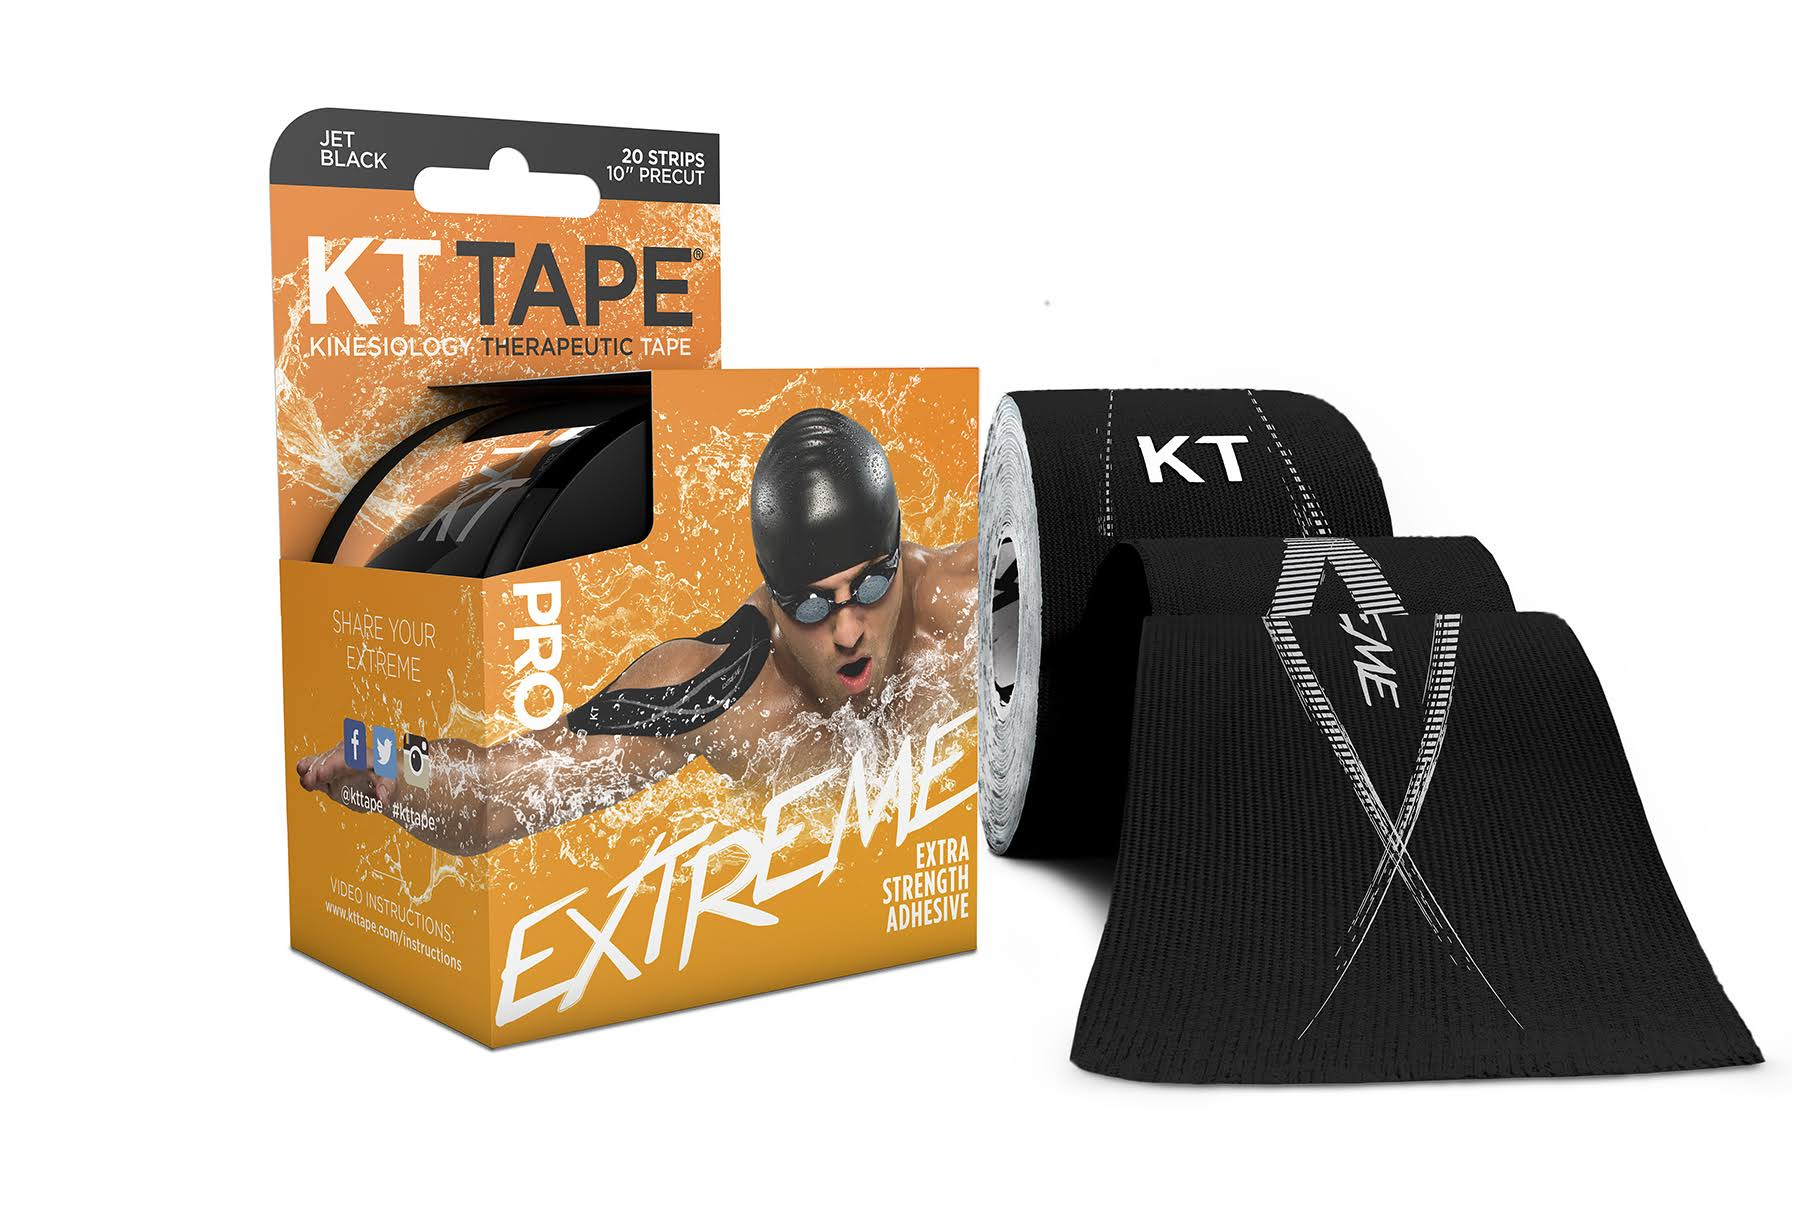 KT Tape Pro Extreme­Therapeutic Elastic­ Kinesiology Tape - 20 Pre-Cut, ­25cm, Black